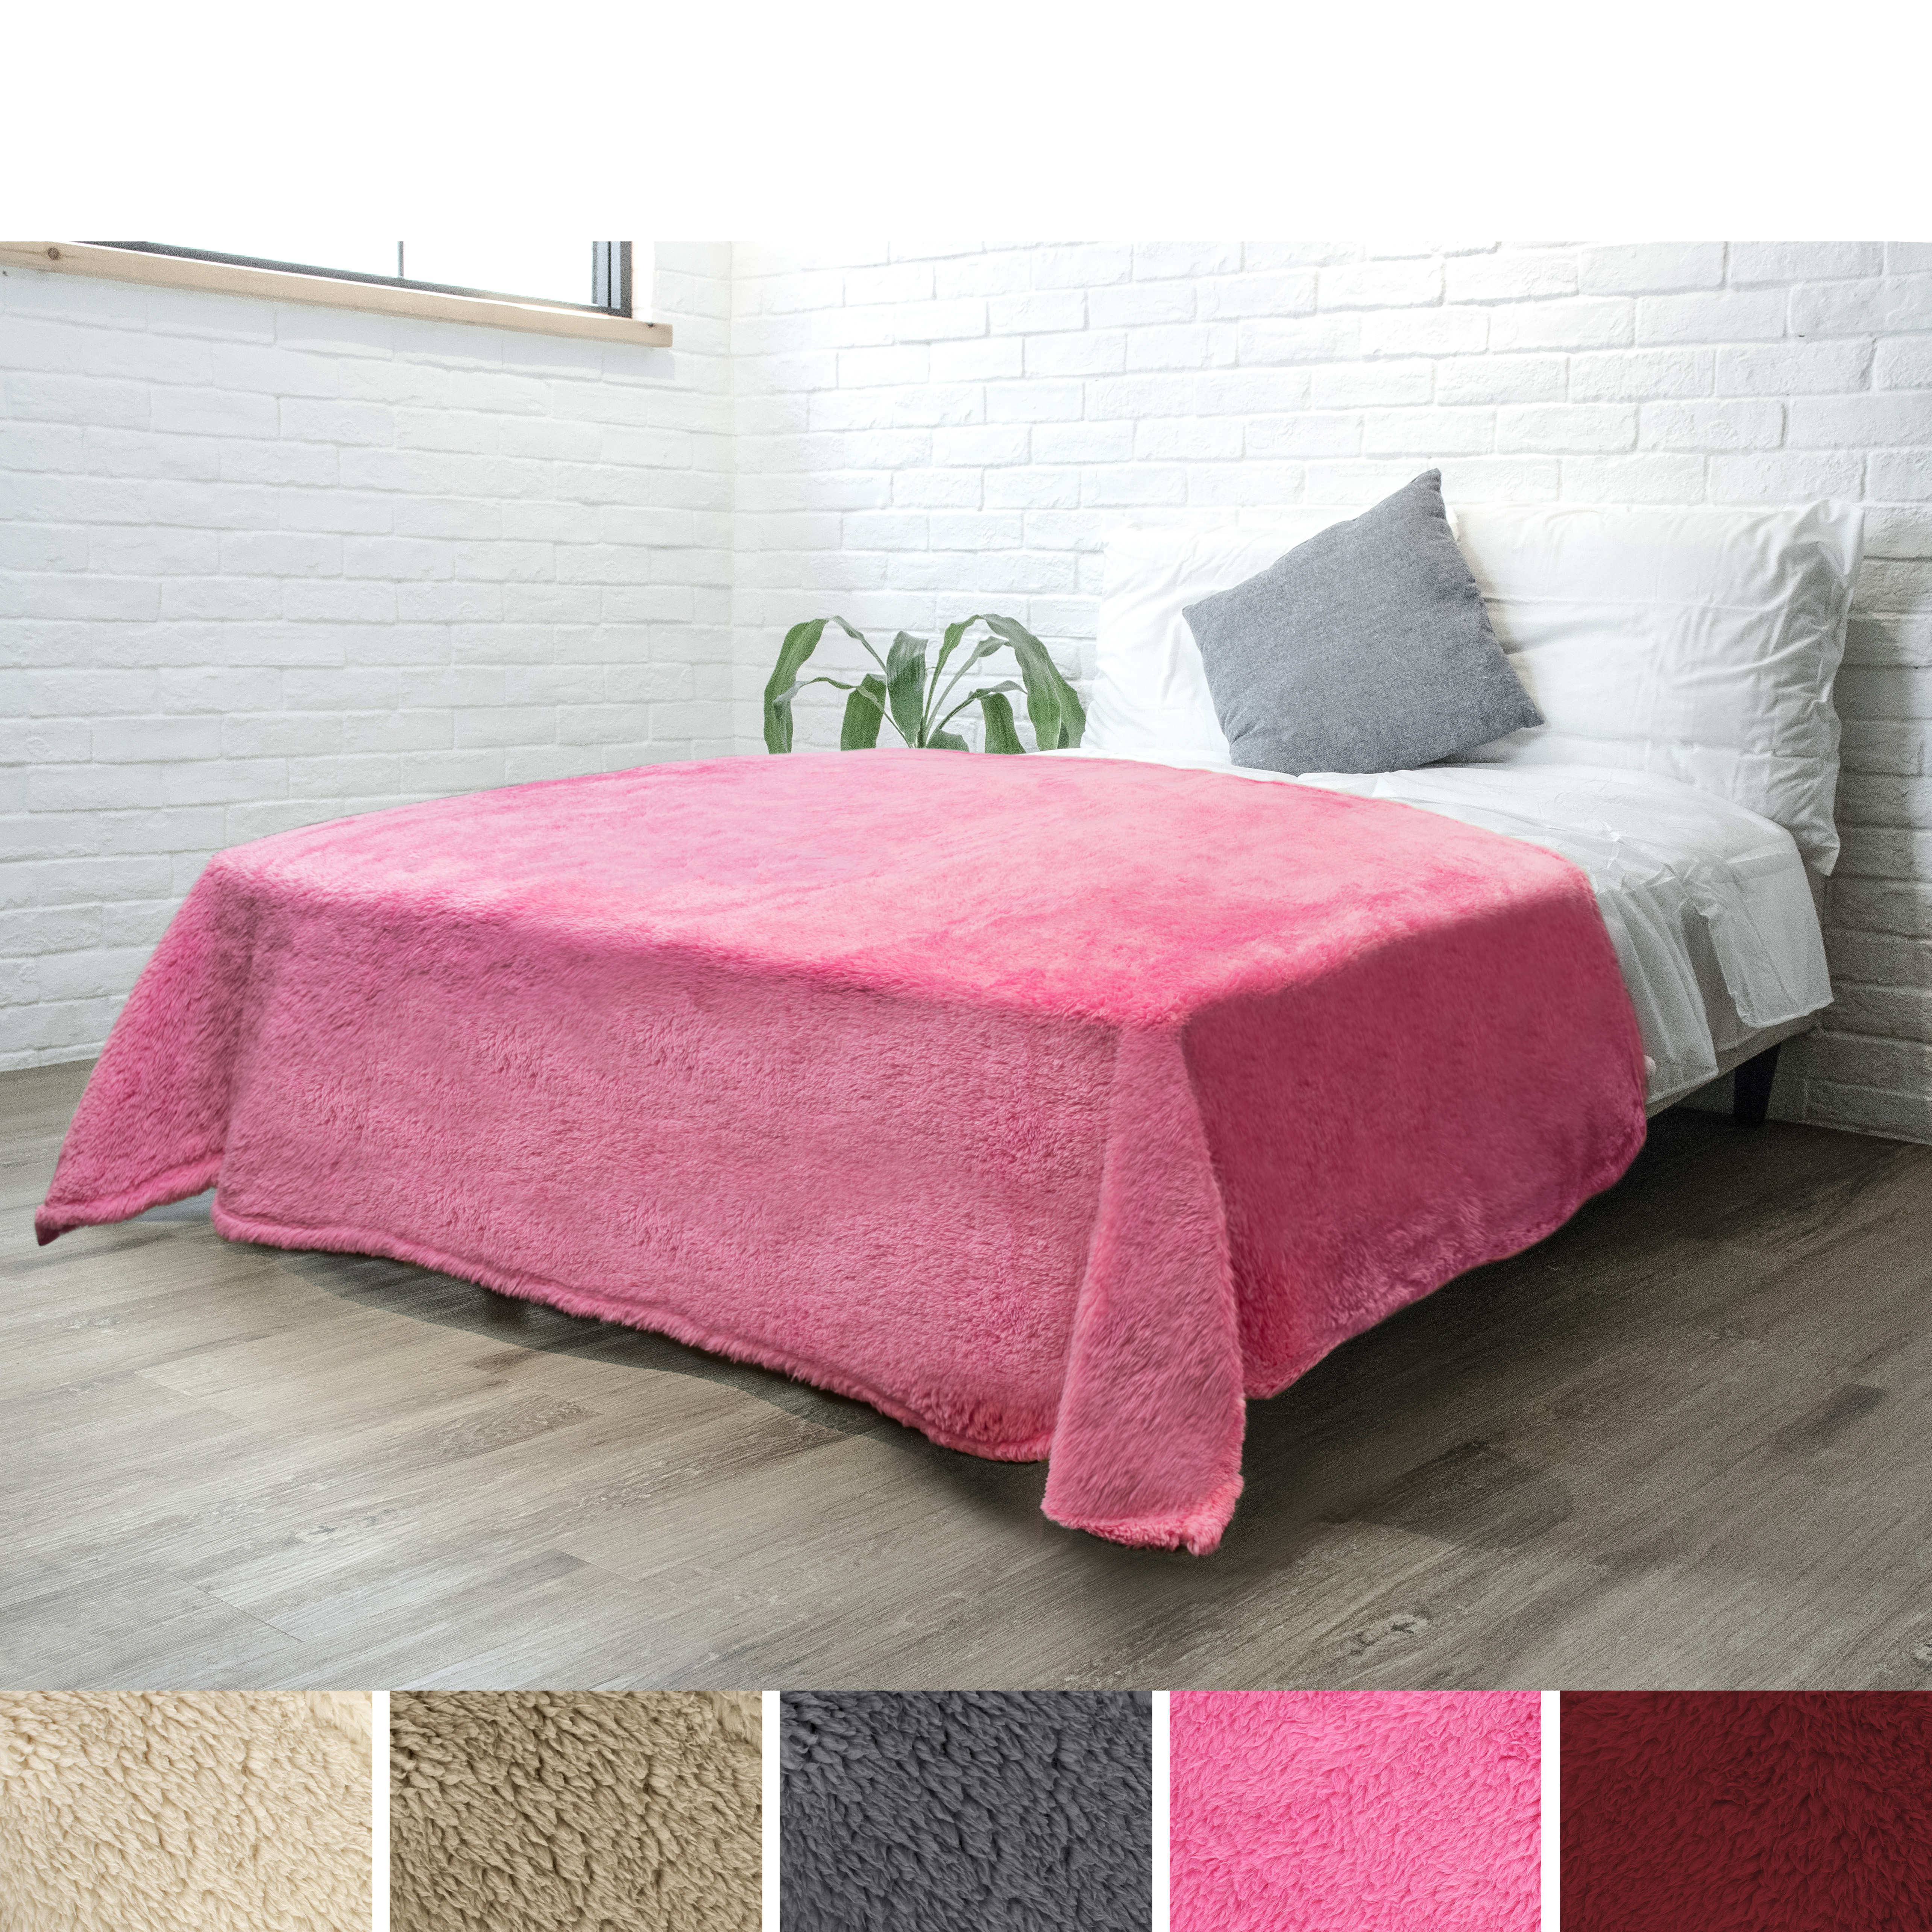 Soft-Fuzzy-Warm-Cozy-Throw-Blanket-with-Fluffy-Sherpa-Fleece-for-Sofa-Couch-Bed thumbnail 60